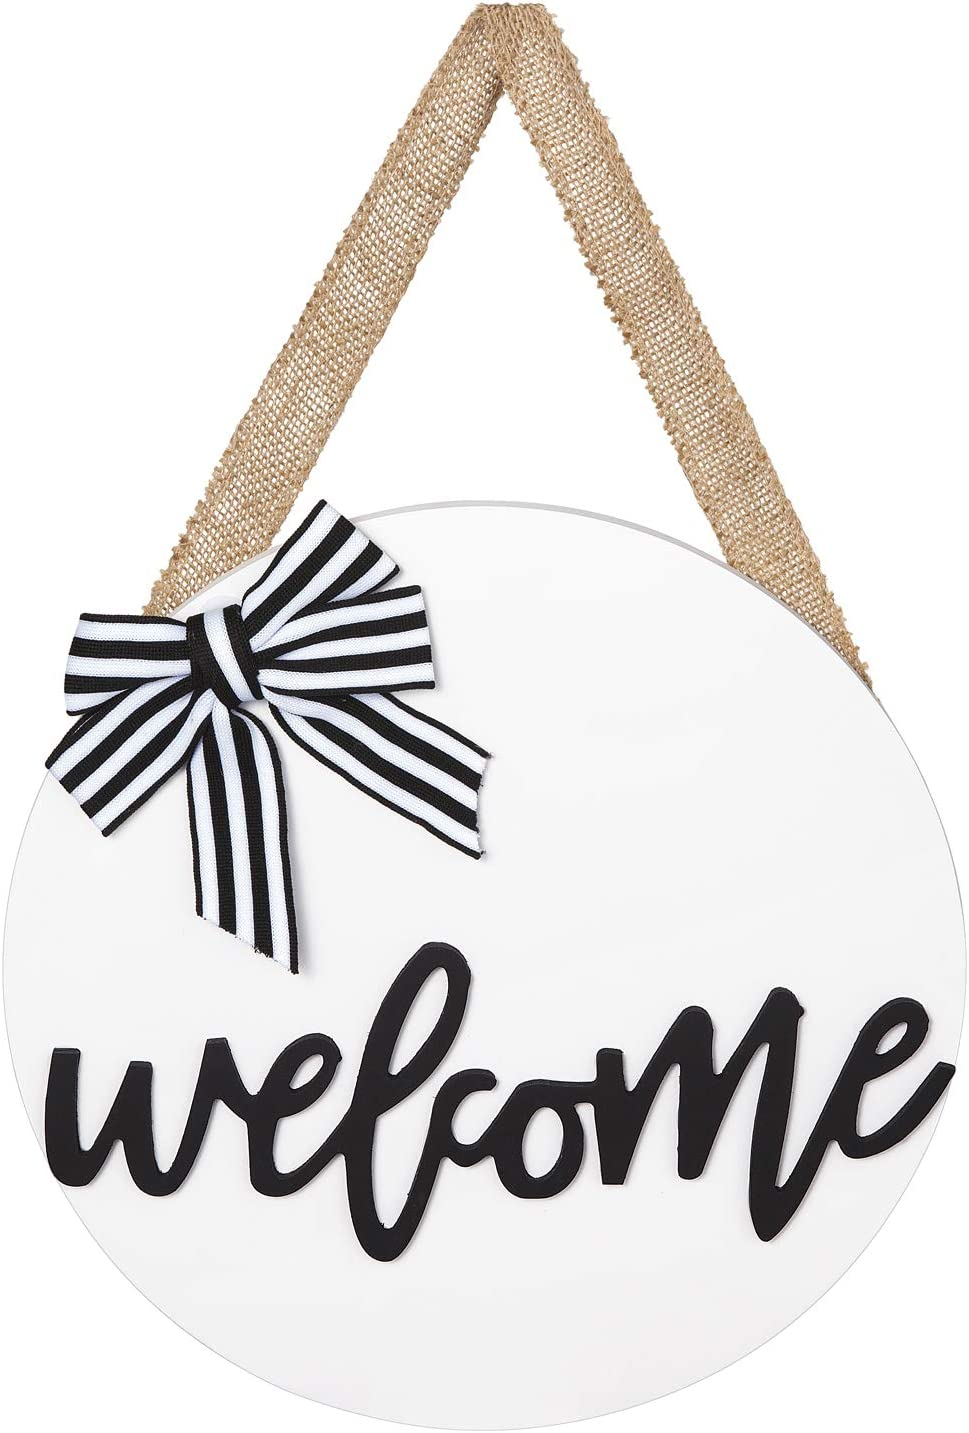 Dahey Welcome Sign Rustic Front Door Decor Round Wood Hanging Sign Farmhouse Porch Decorations for Home Thanksgiving Christmas,White